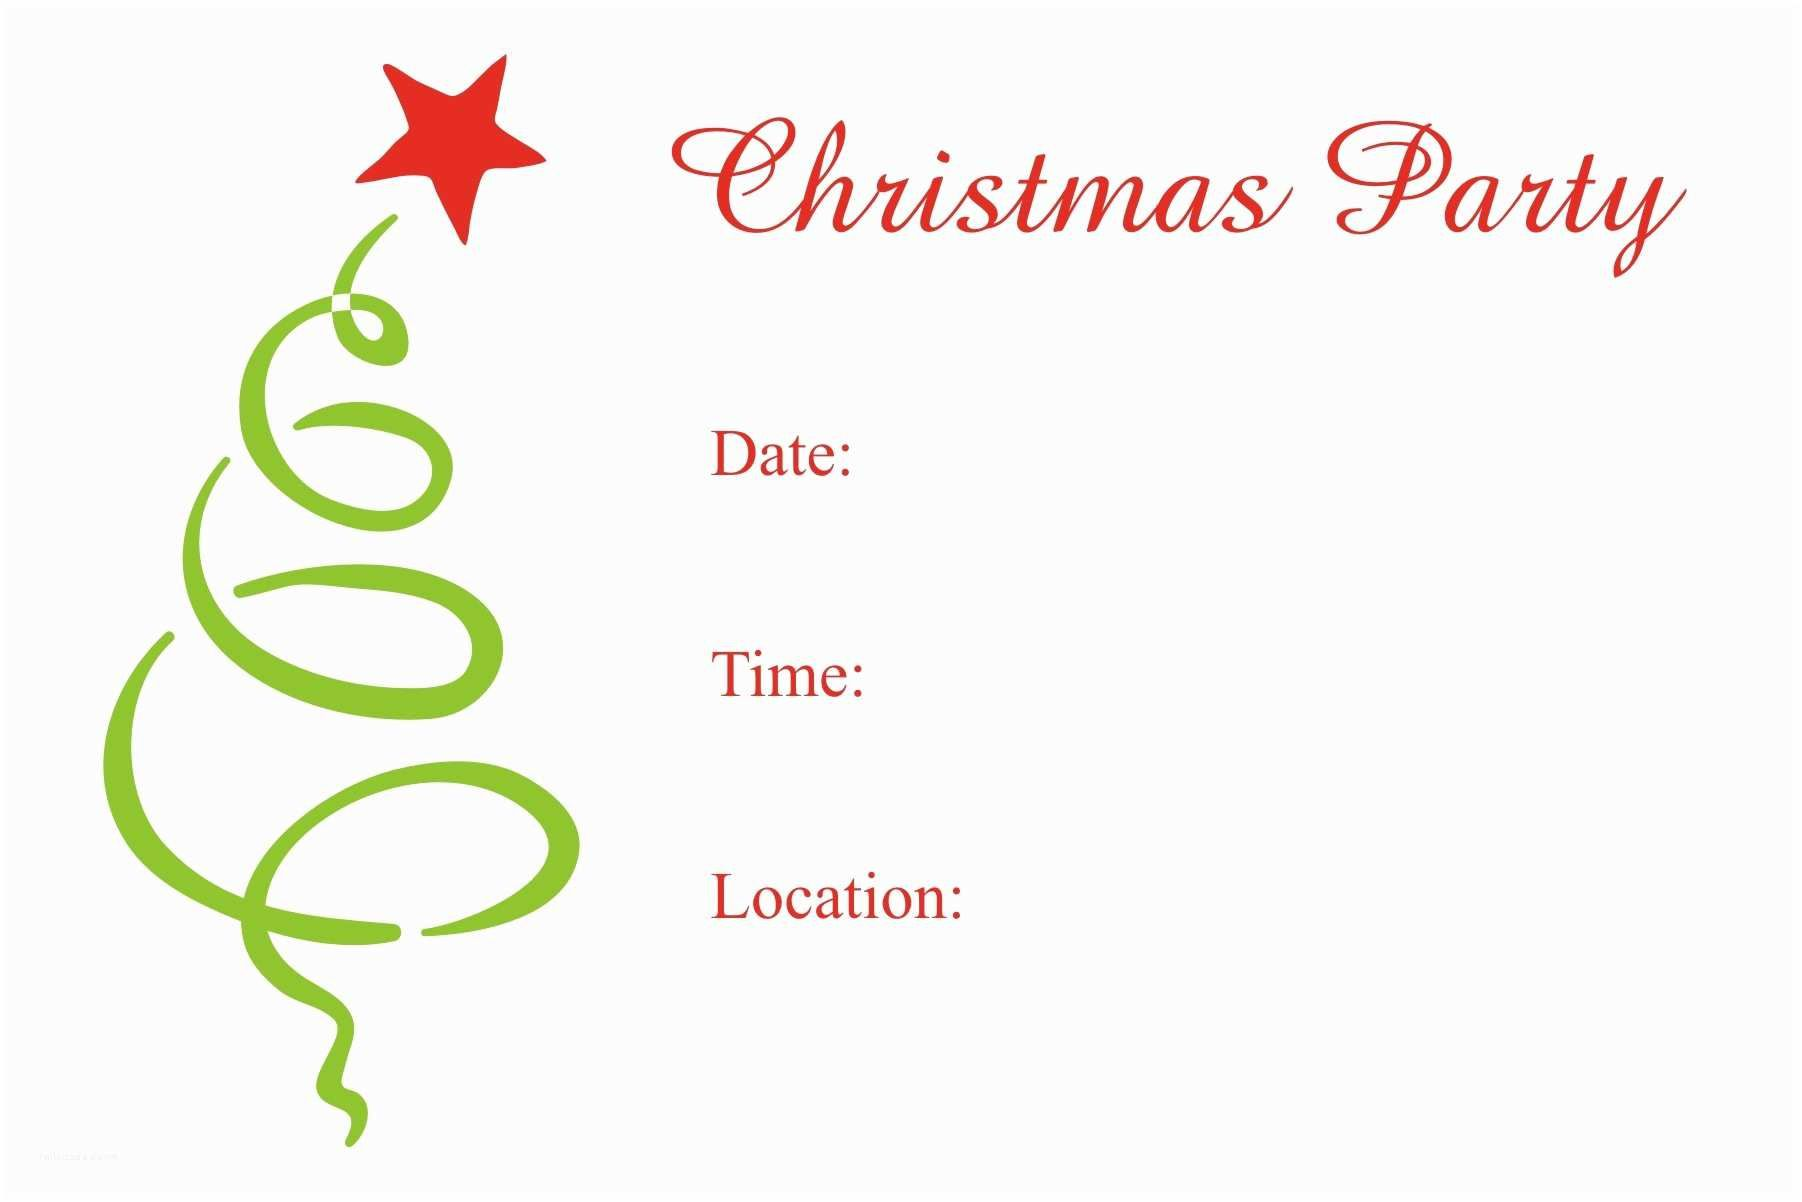 007 Archaicawful Christma Party Invitation Template Highest Clarity  Funny Free Download Word CardFull